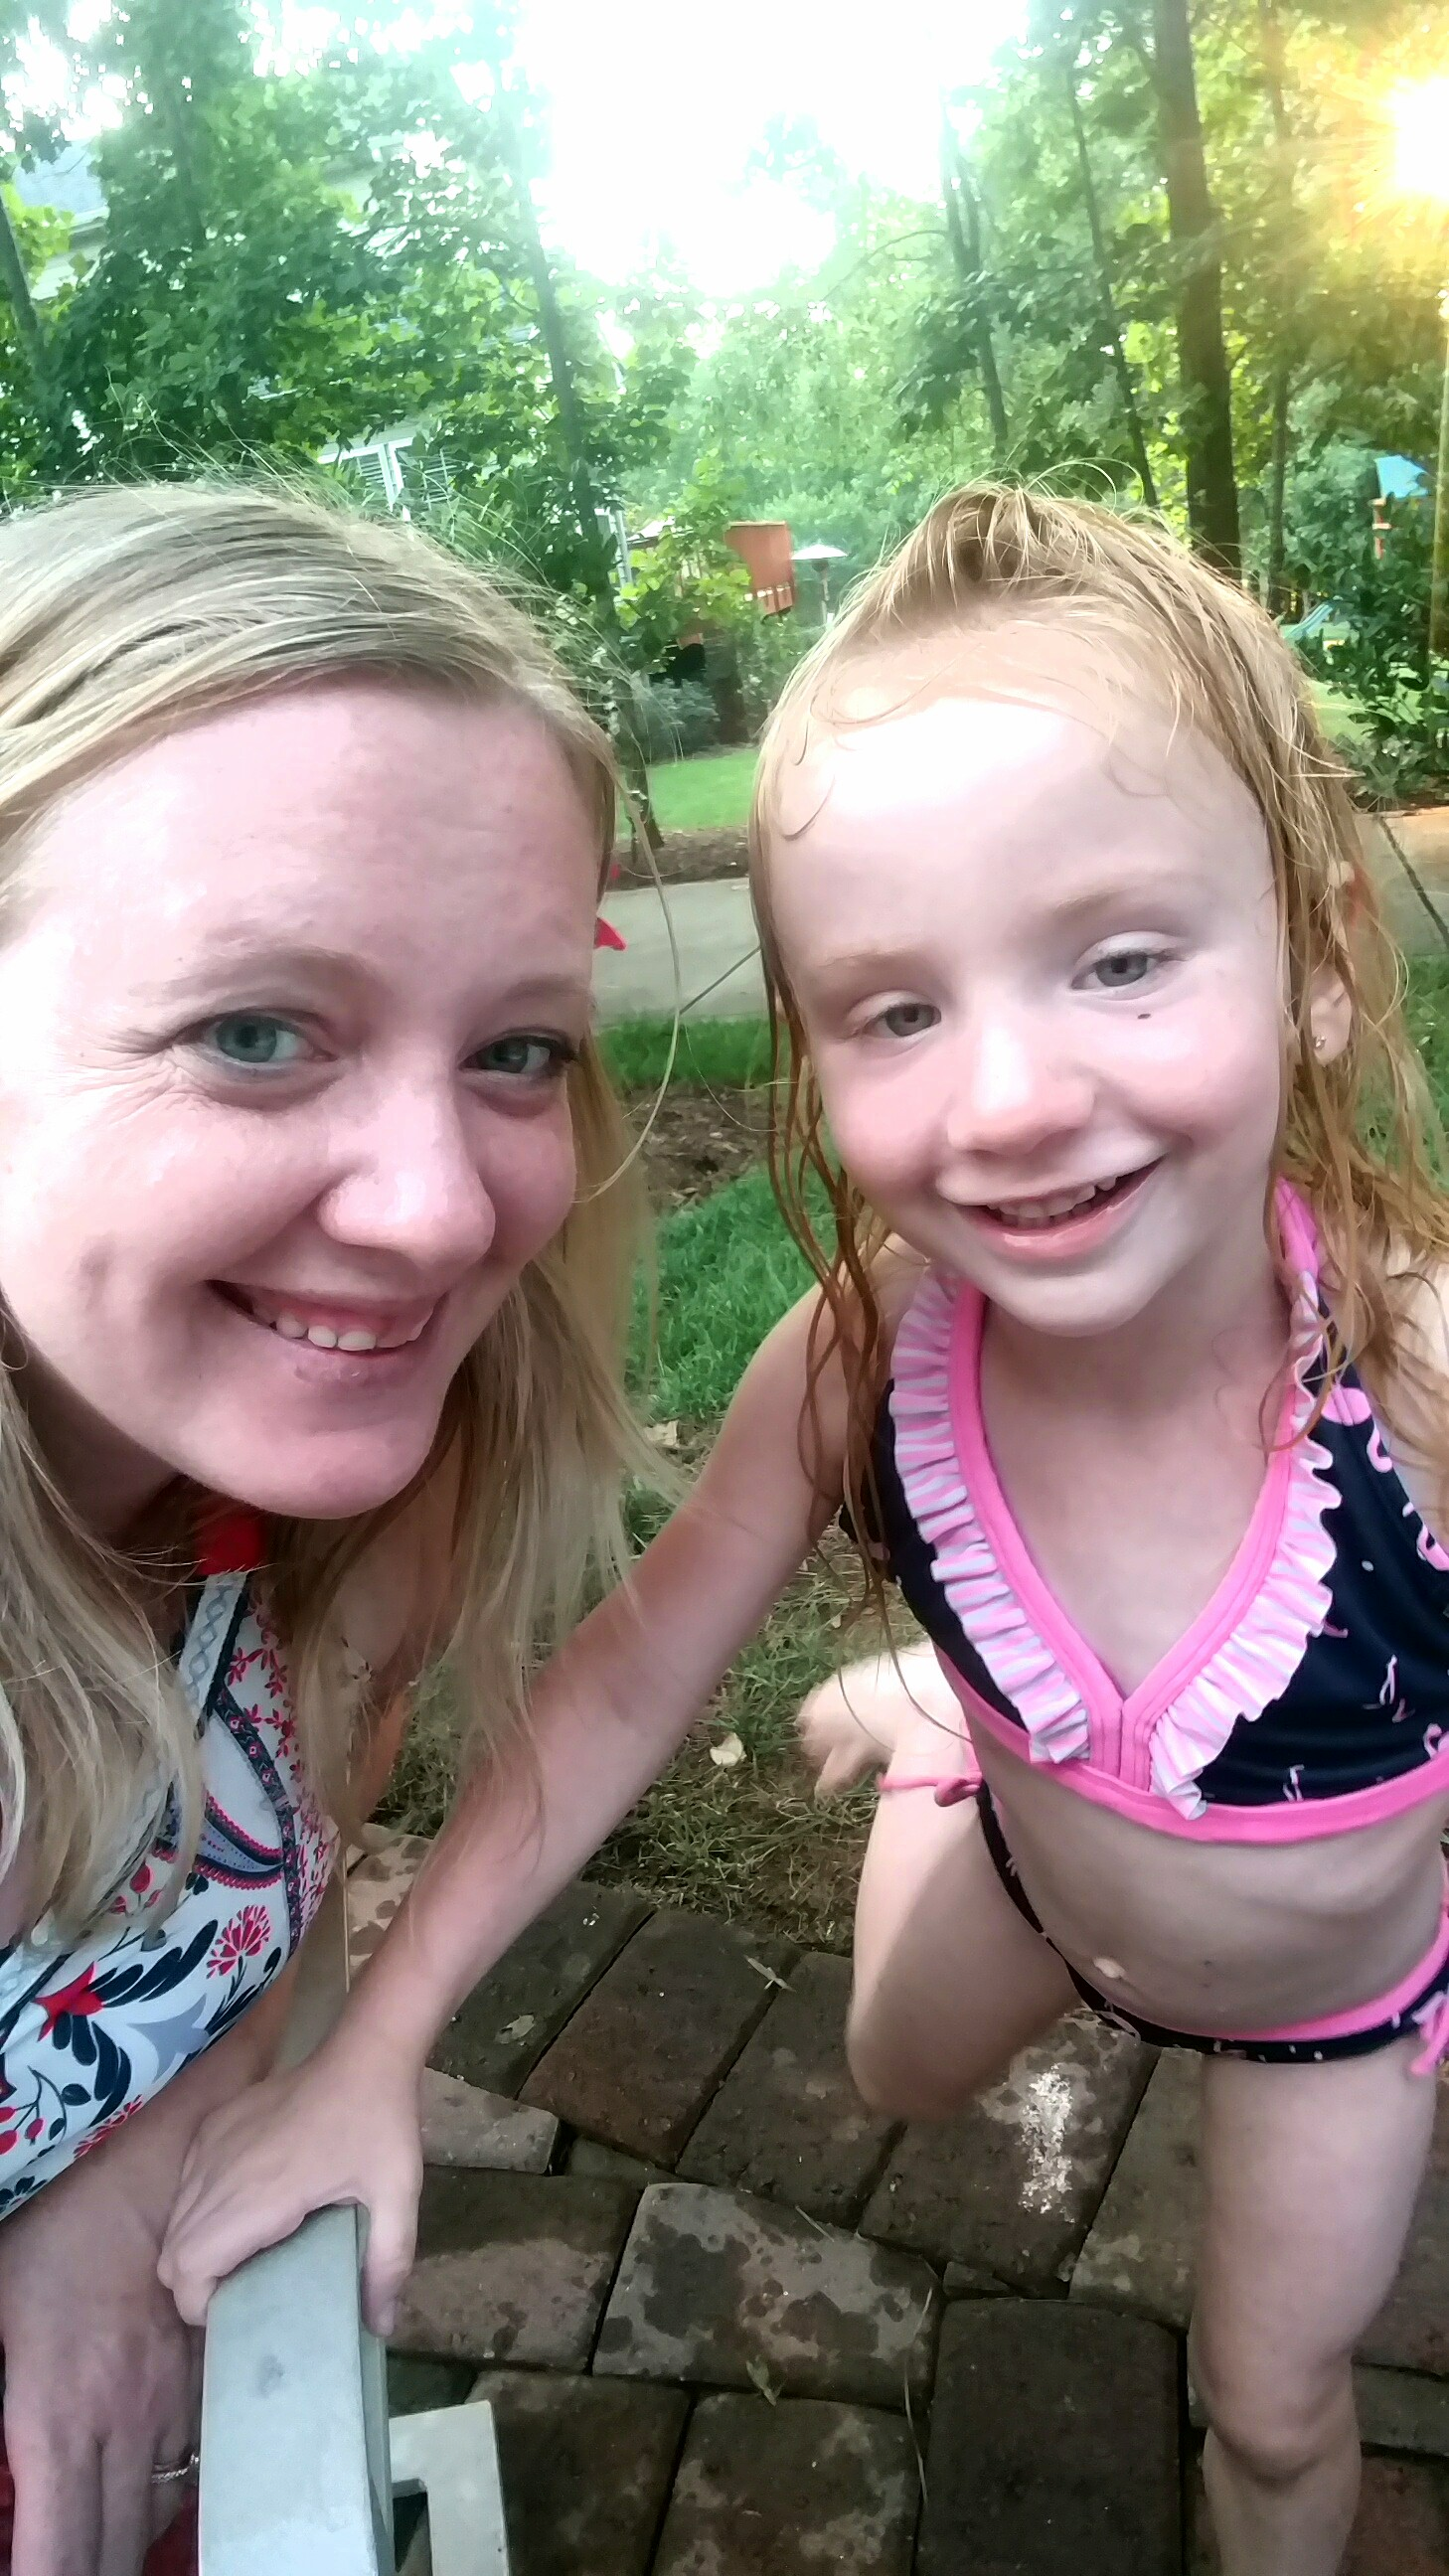 mom and little girl with autism at the pool